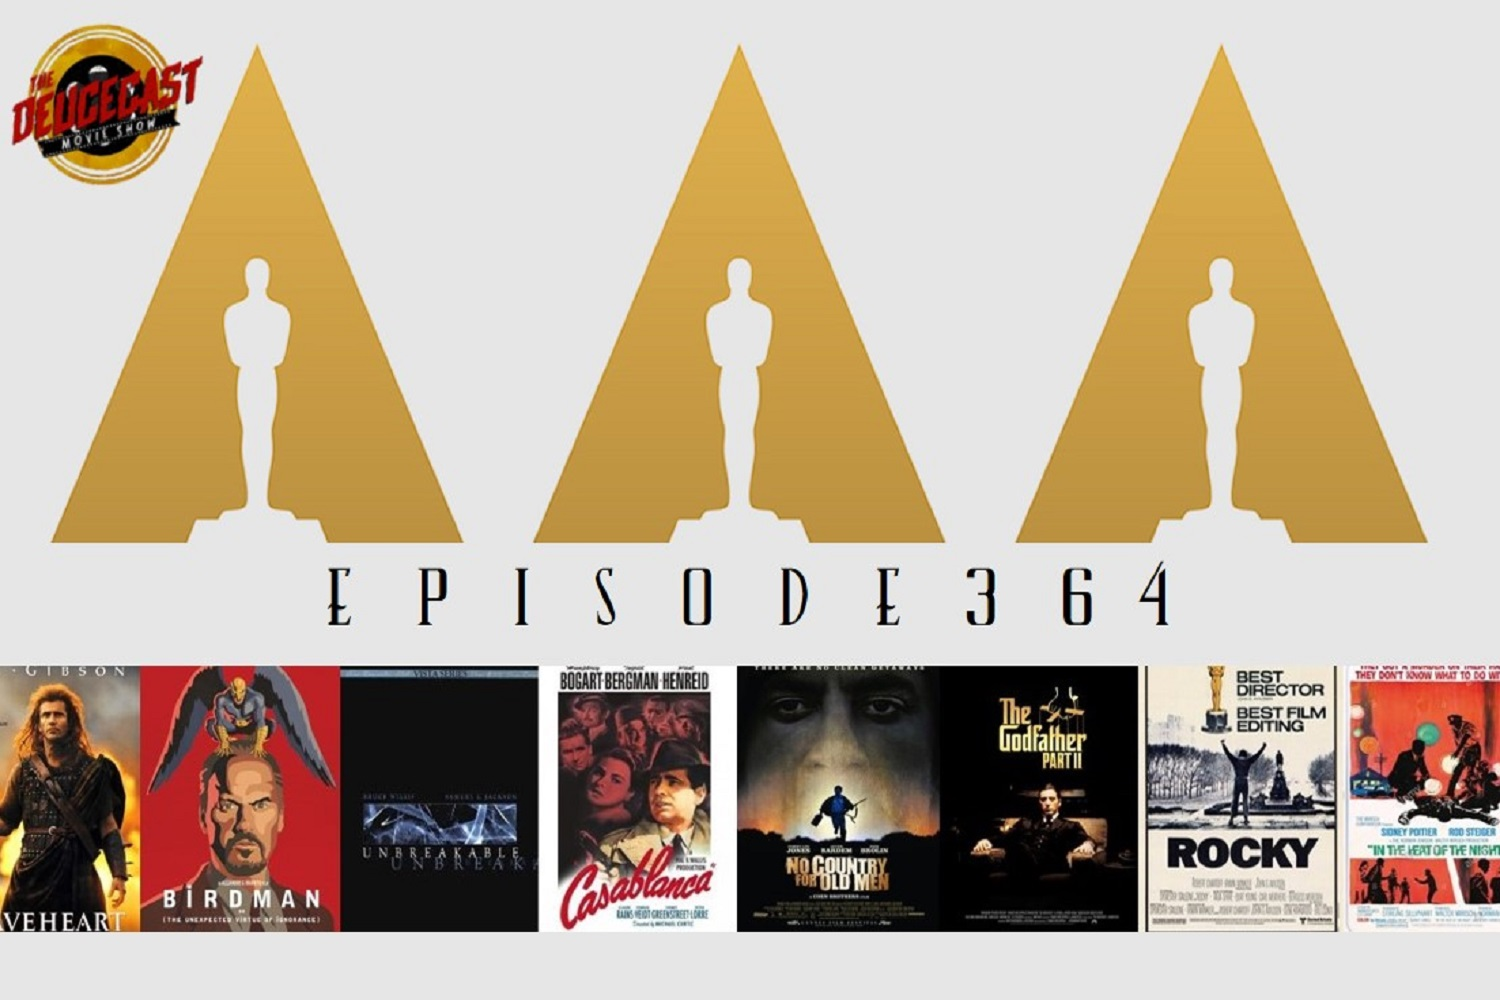 The Deucecast Movie Show Episode 364: The Best Best Picture Winners